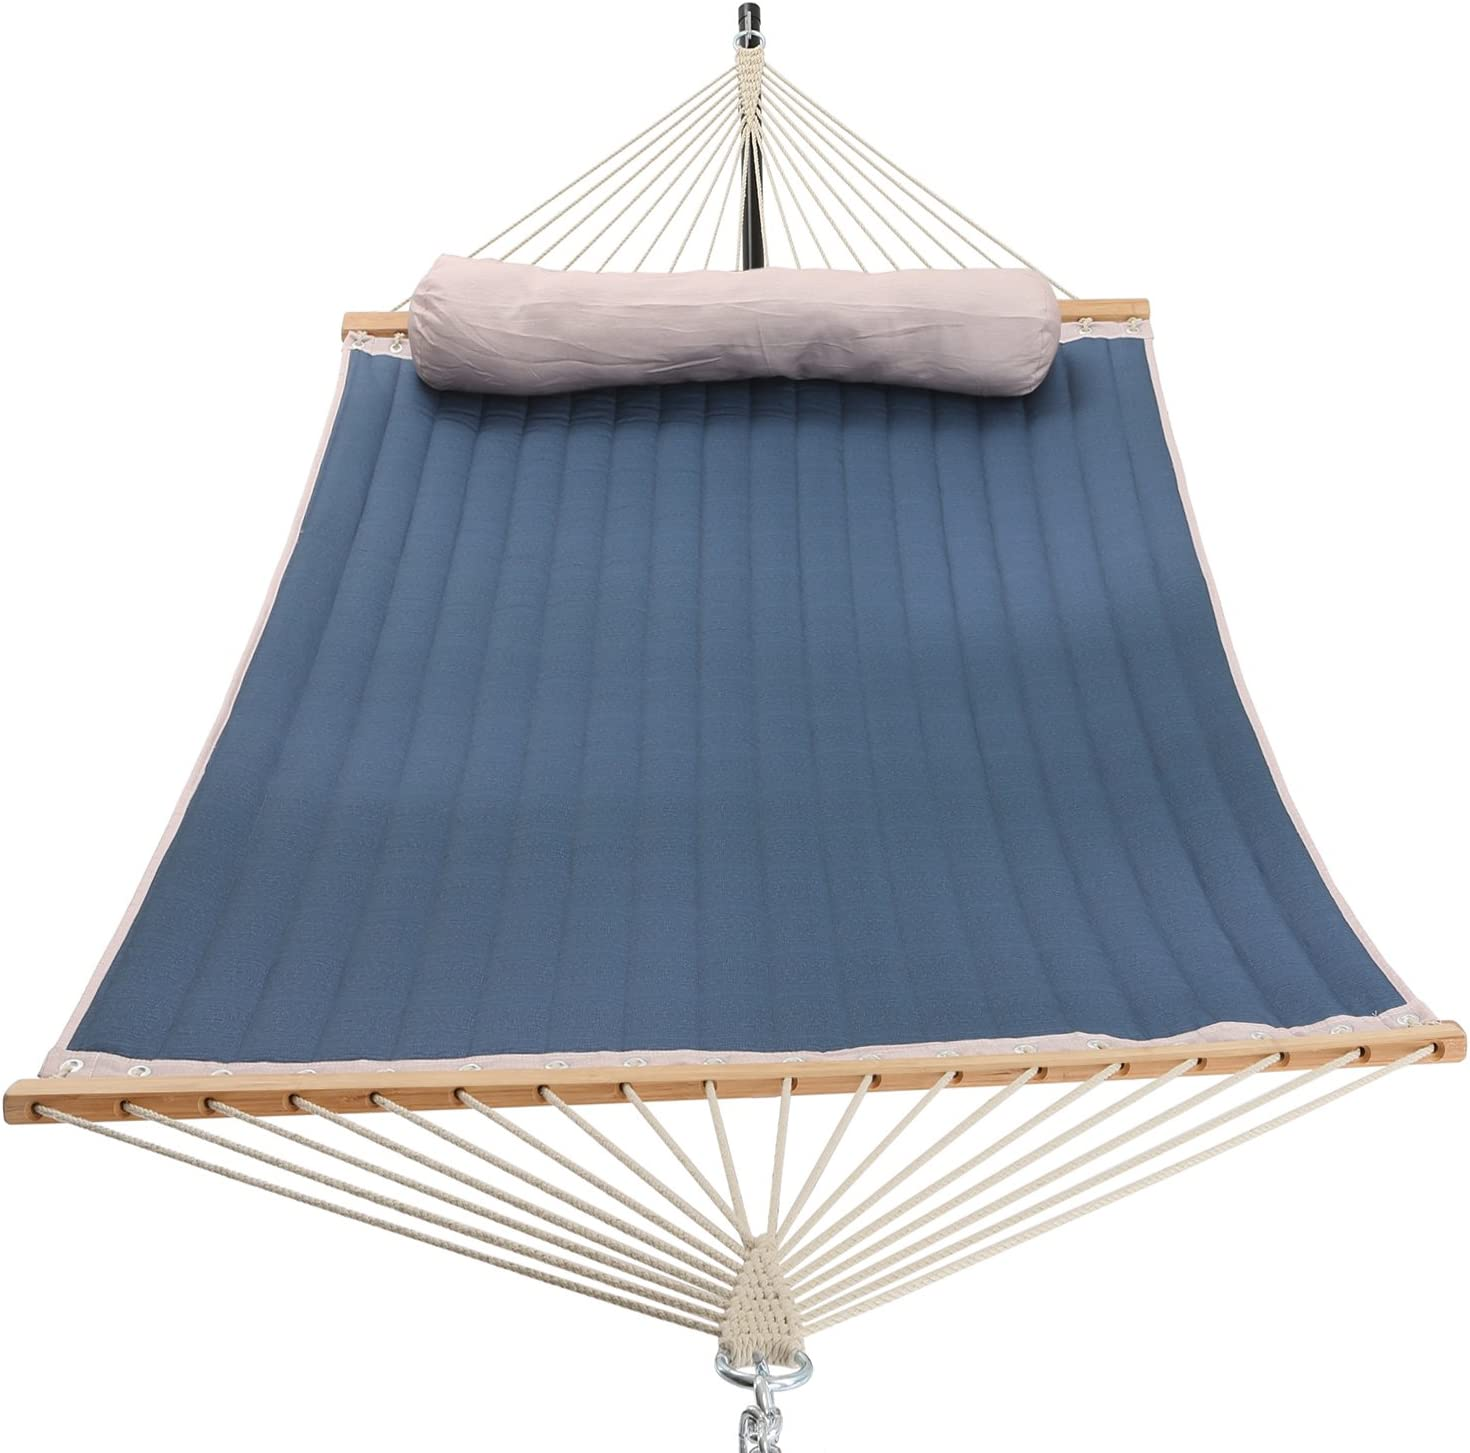 PATIO WATCHER 11 Feet Quilted Fabric Hammock with Pillow, Double Hammock with Bamboo Wood Spreader Bars, Perfect for Outdoor Patio Yard, Dark Blue